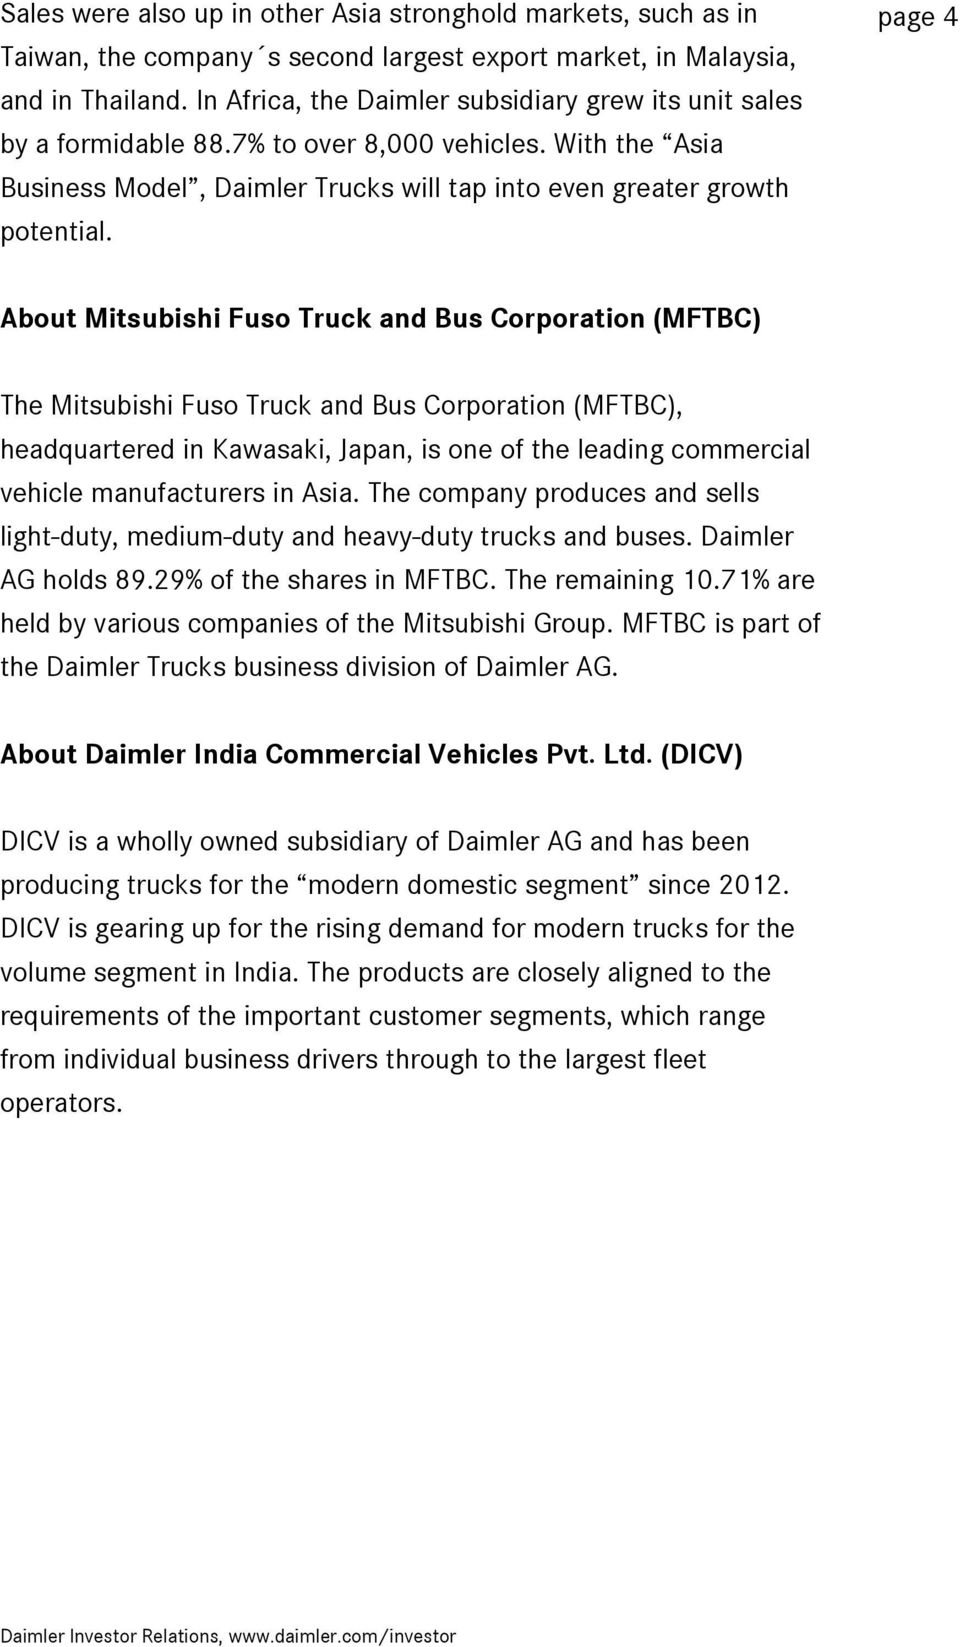 page 4 About Mitsubishi Fuso Truck and Bus Corporation (MFTBC) The Mitsubishi Fuso Truck and Bus Corporation (MFTBC), headquartered in Kawasaki, Japan, is one of the leading commercial vehicle